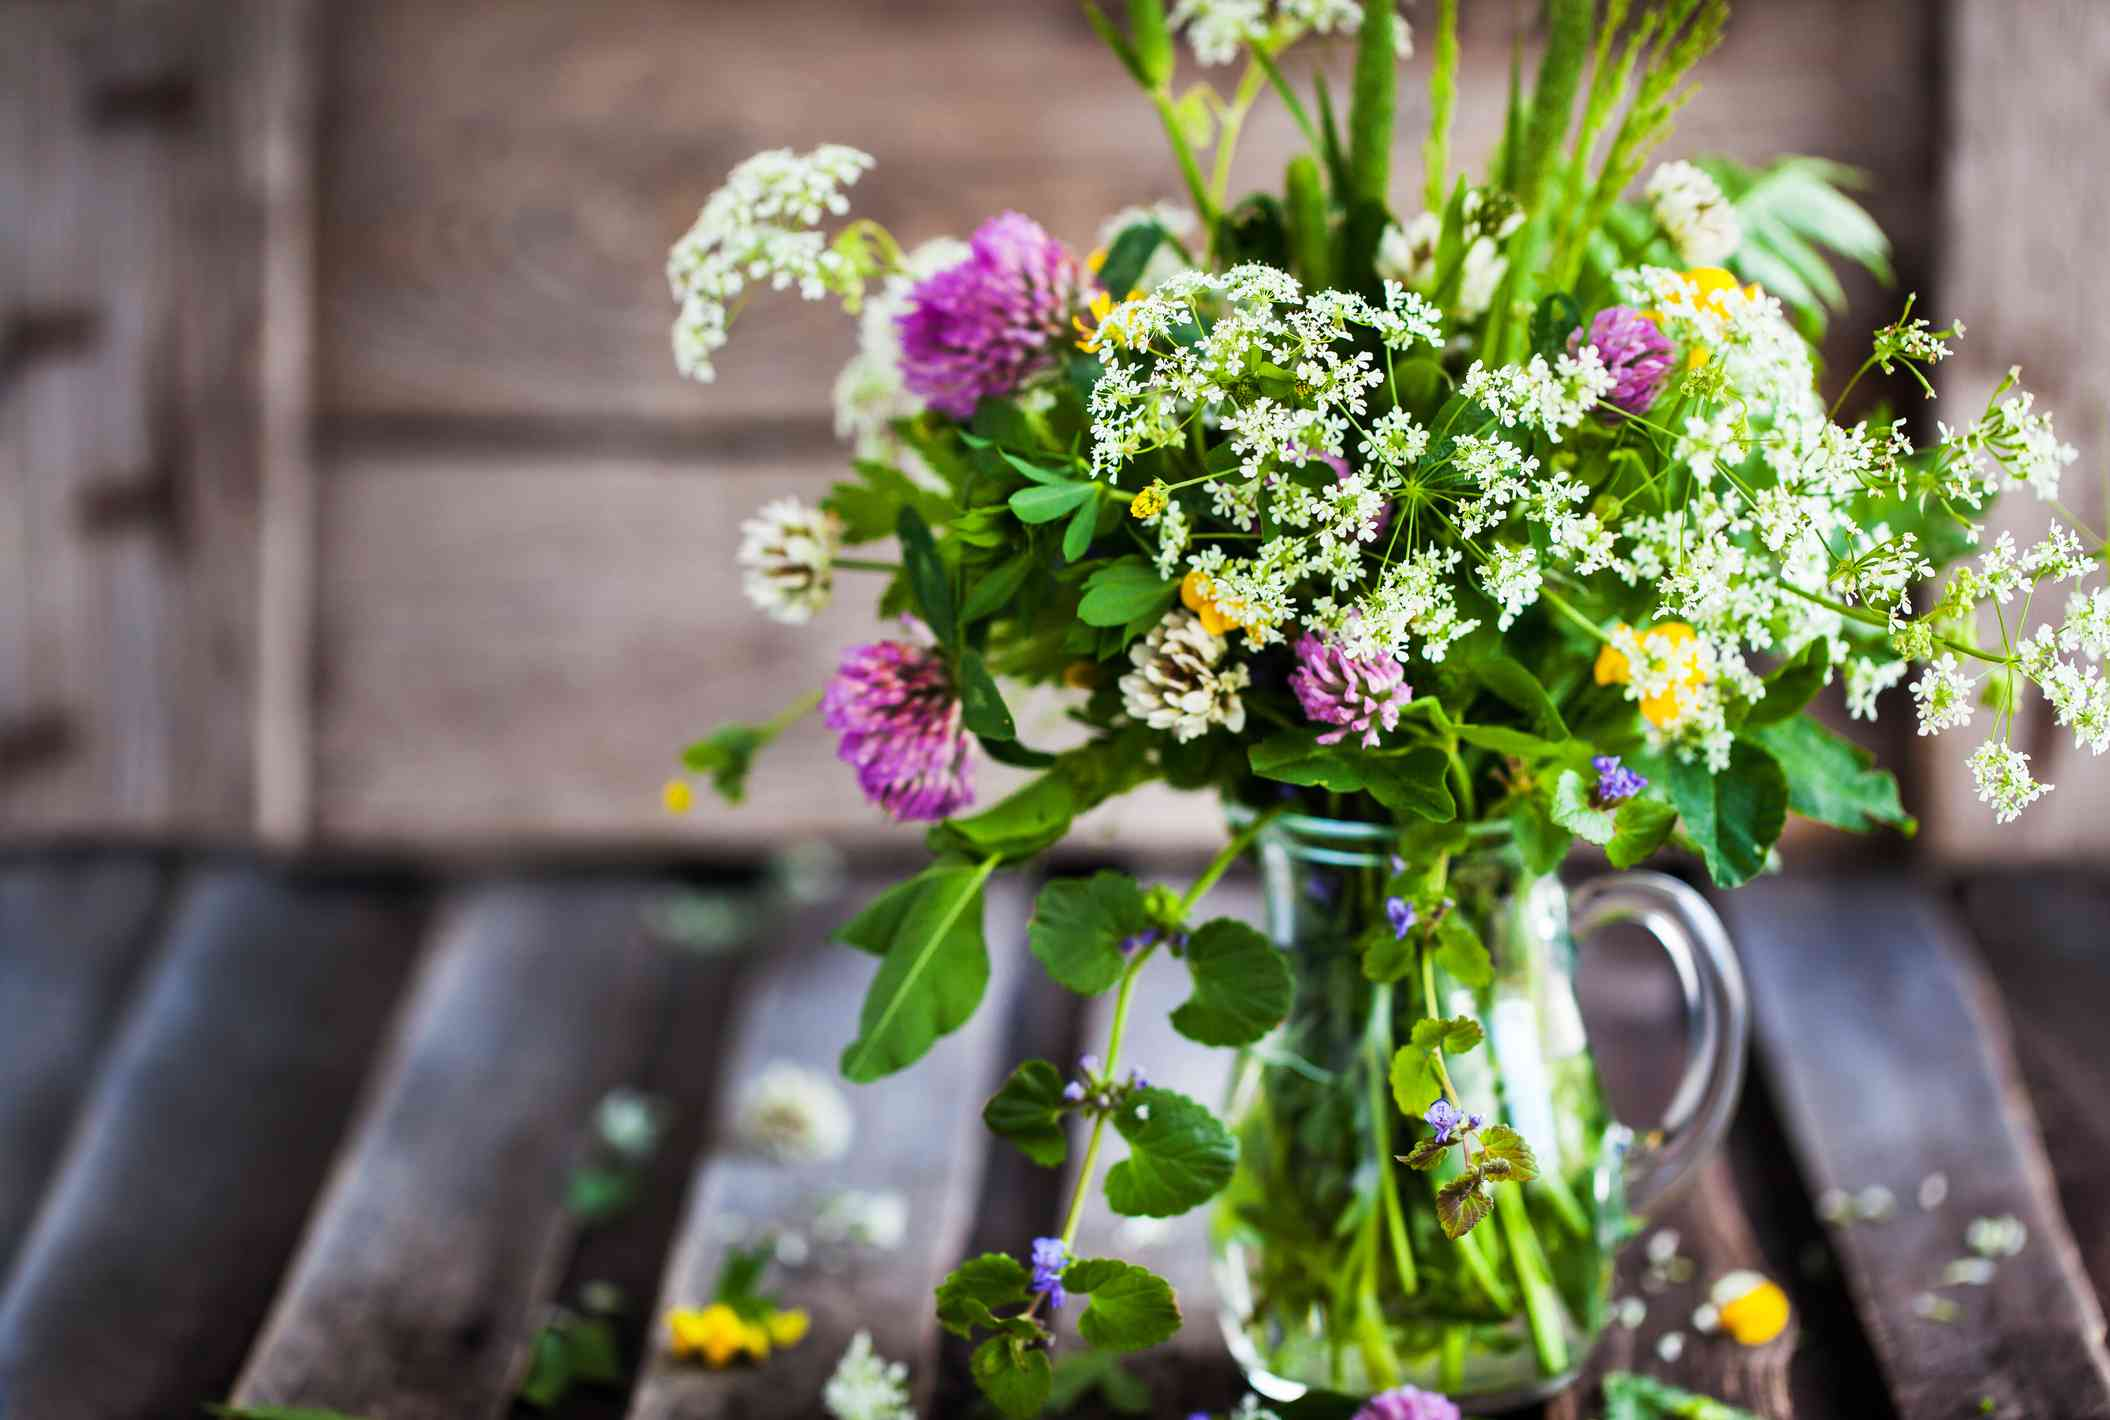 Bouquet of wildflowers in glass jar on wooden table